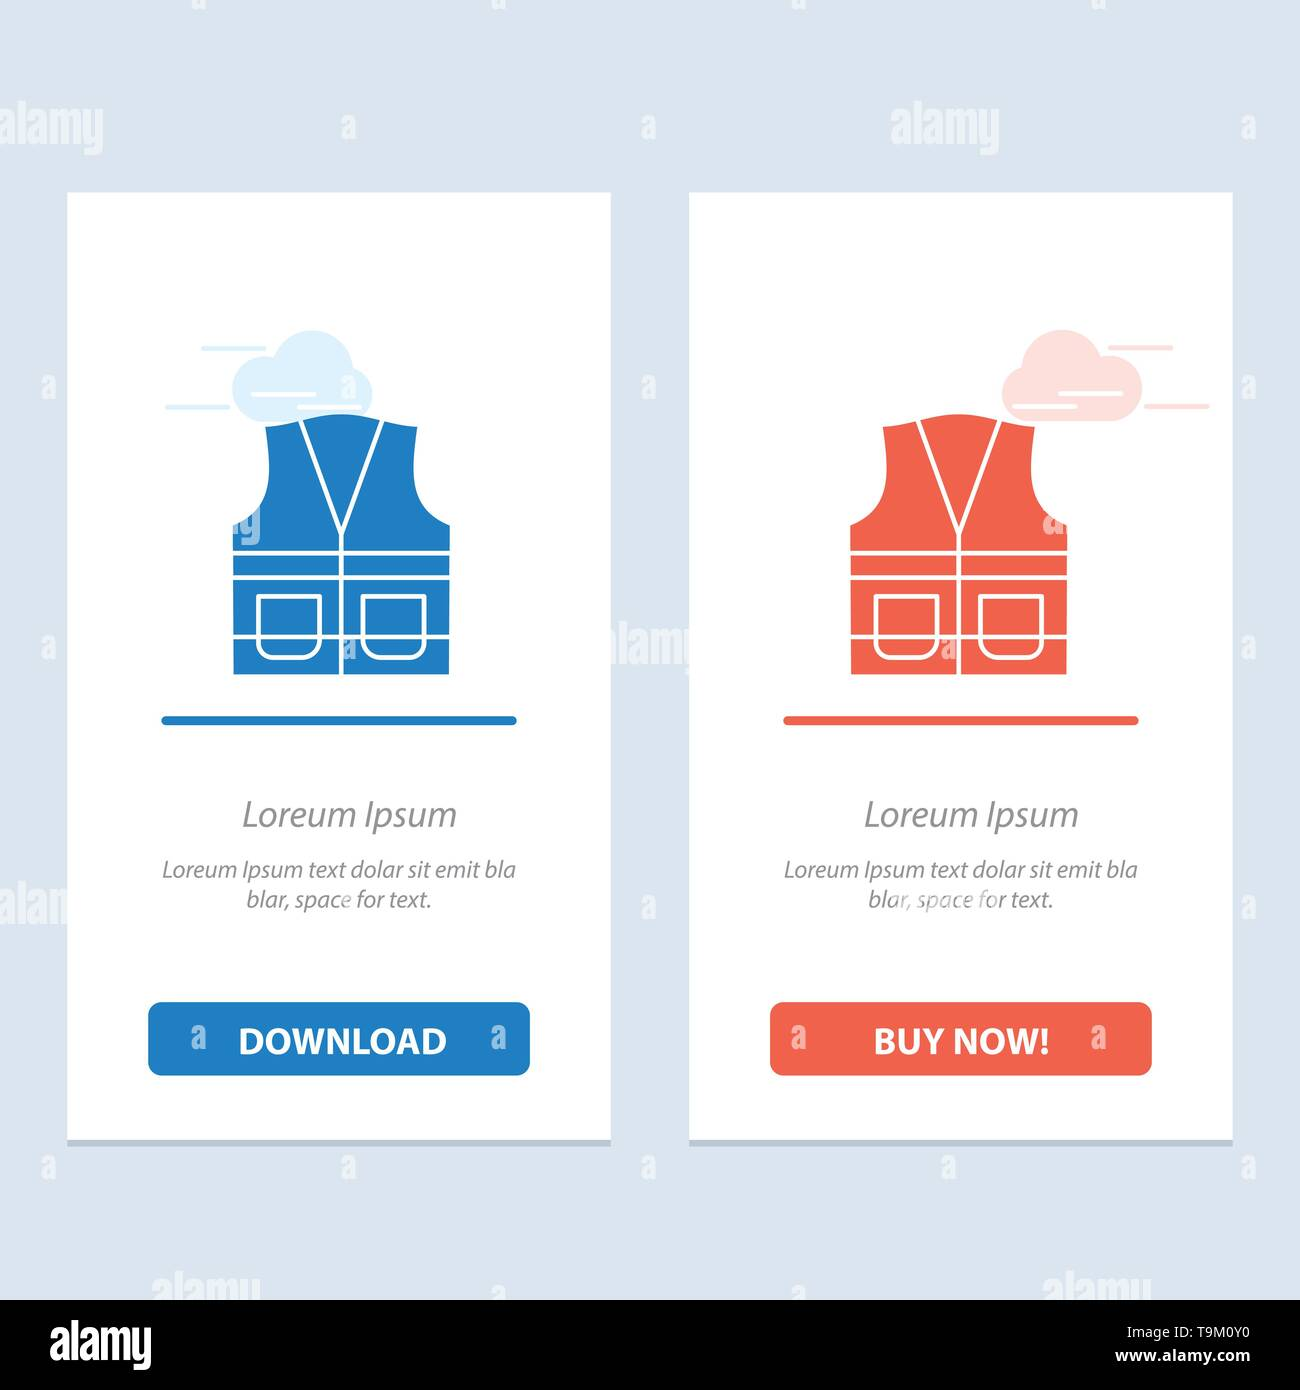 Vest, Jacket, Labour, Construction, Repair  Blue and Red Download and Buy Now web Widget Card Template - Stock Image